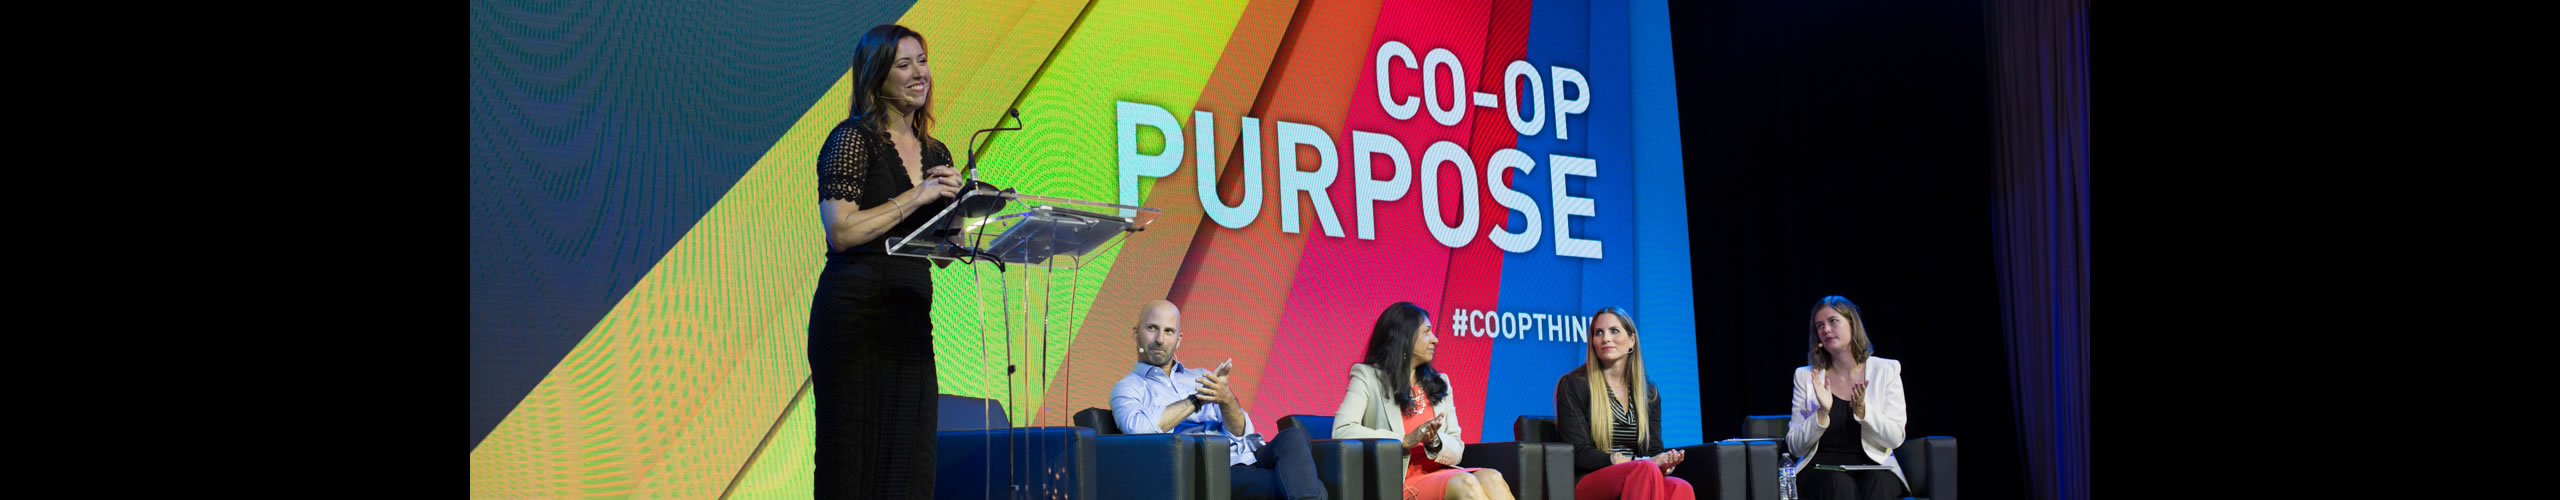 "Ido Leffler on CO-OP Purpose: ""You Can't Miss This Opportunity"""